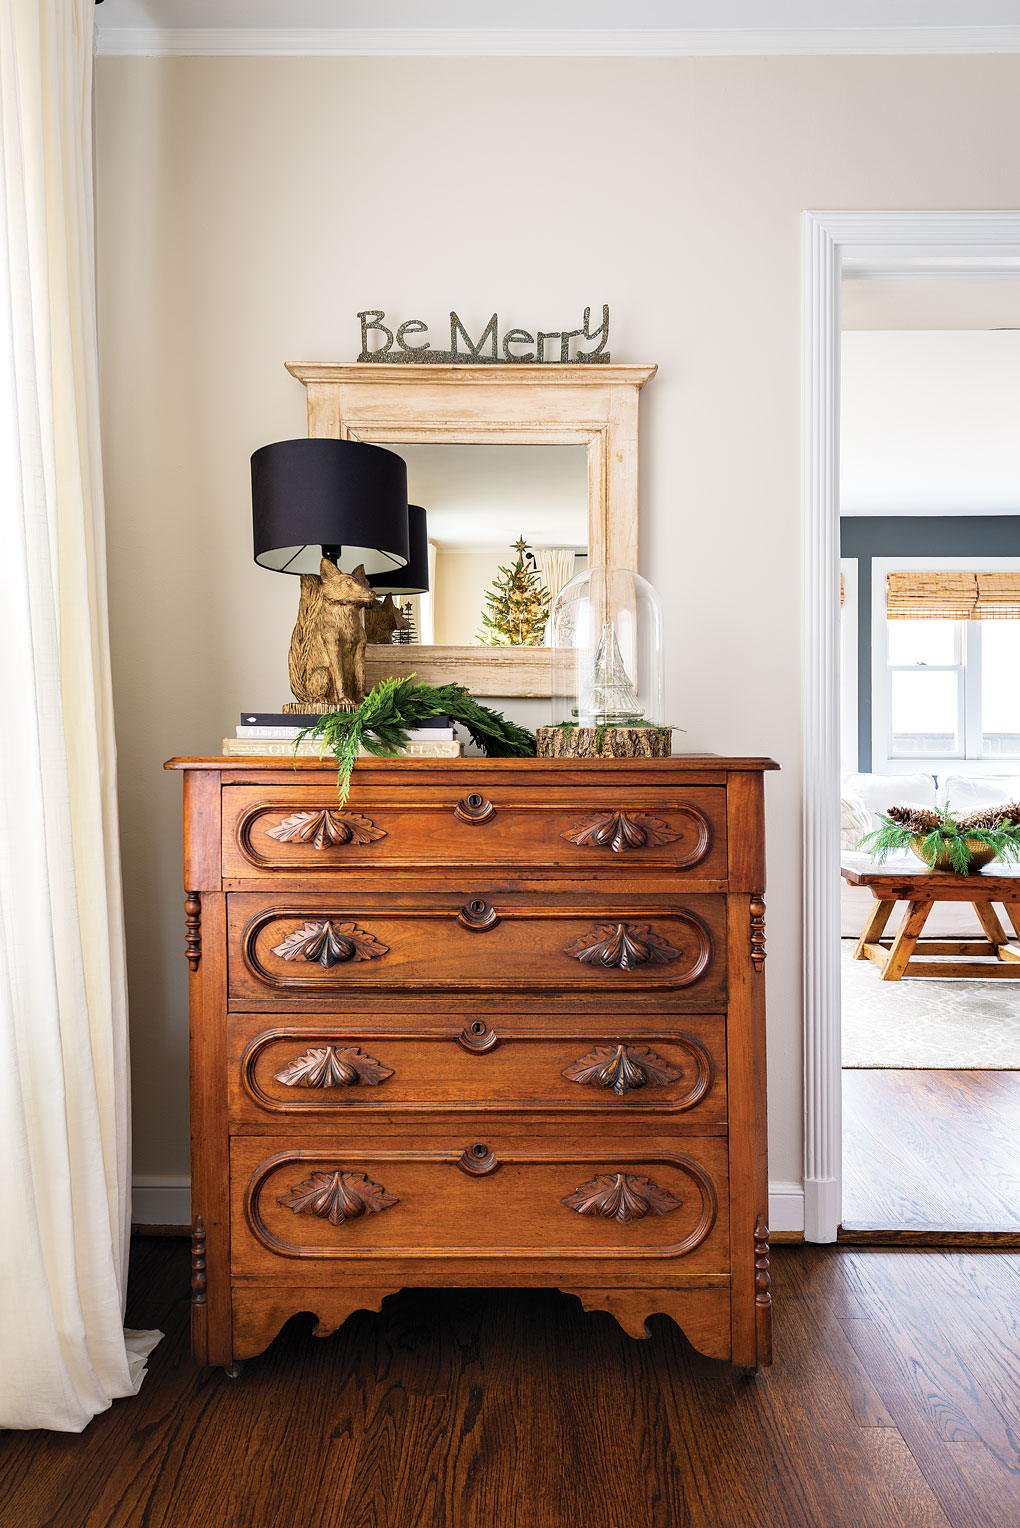 An antique and ornate wooden dresser with a mirror and a fox lamp on top accented with fresh greenery.